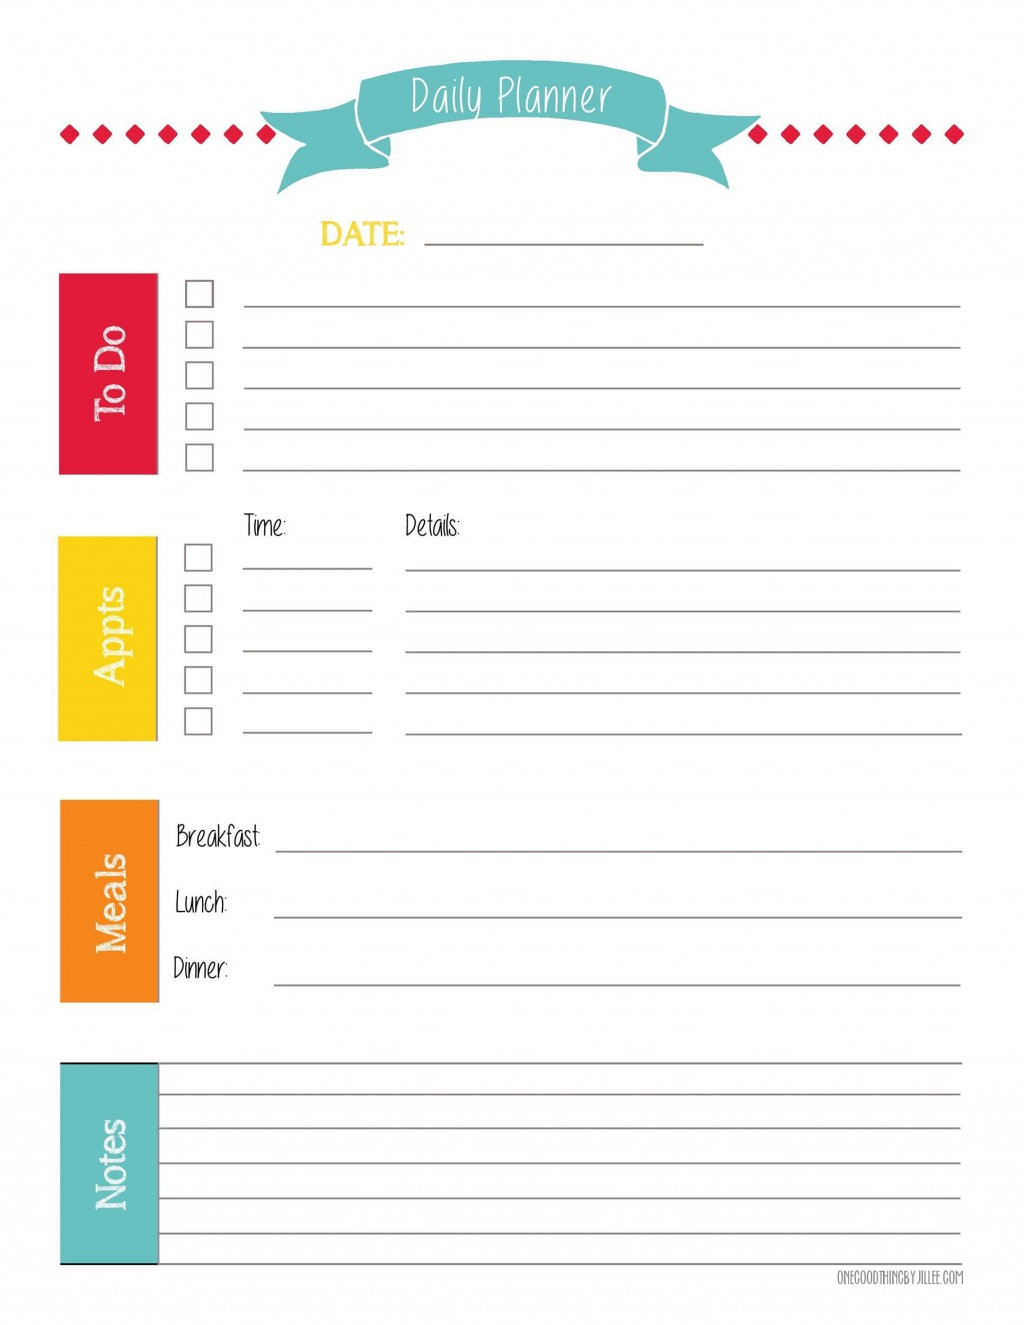 005 Archaicawful Real Estate Daily Planner Template Highest Quality Large